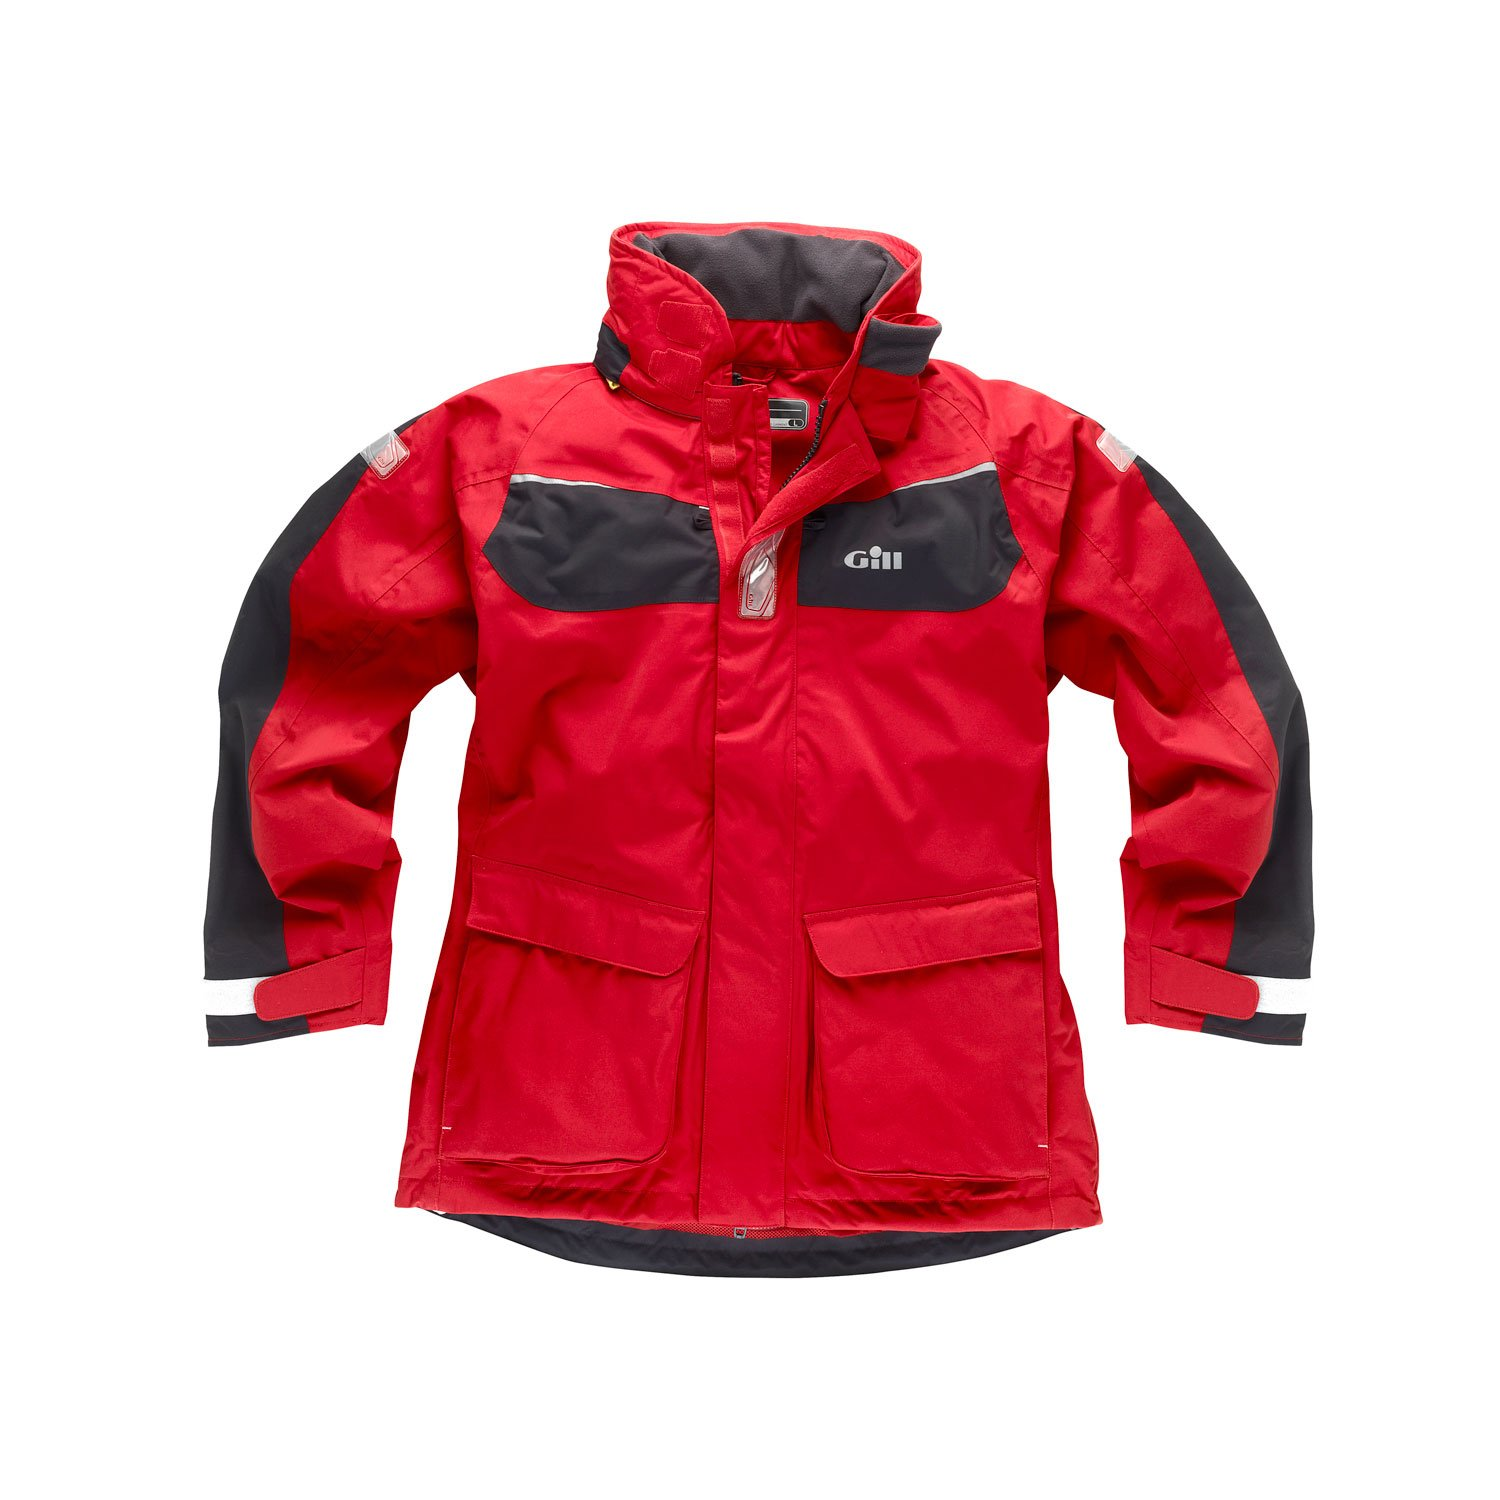 Gill IN12J Coast Jacket (Red/Graphite, M) IN12JRM by Gill